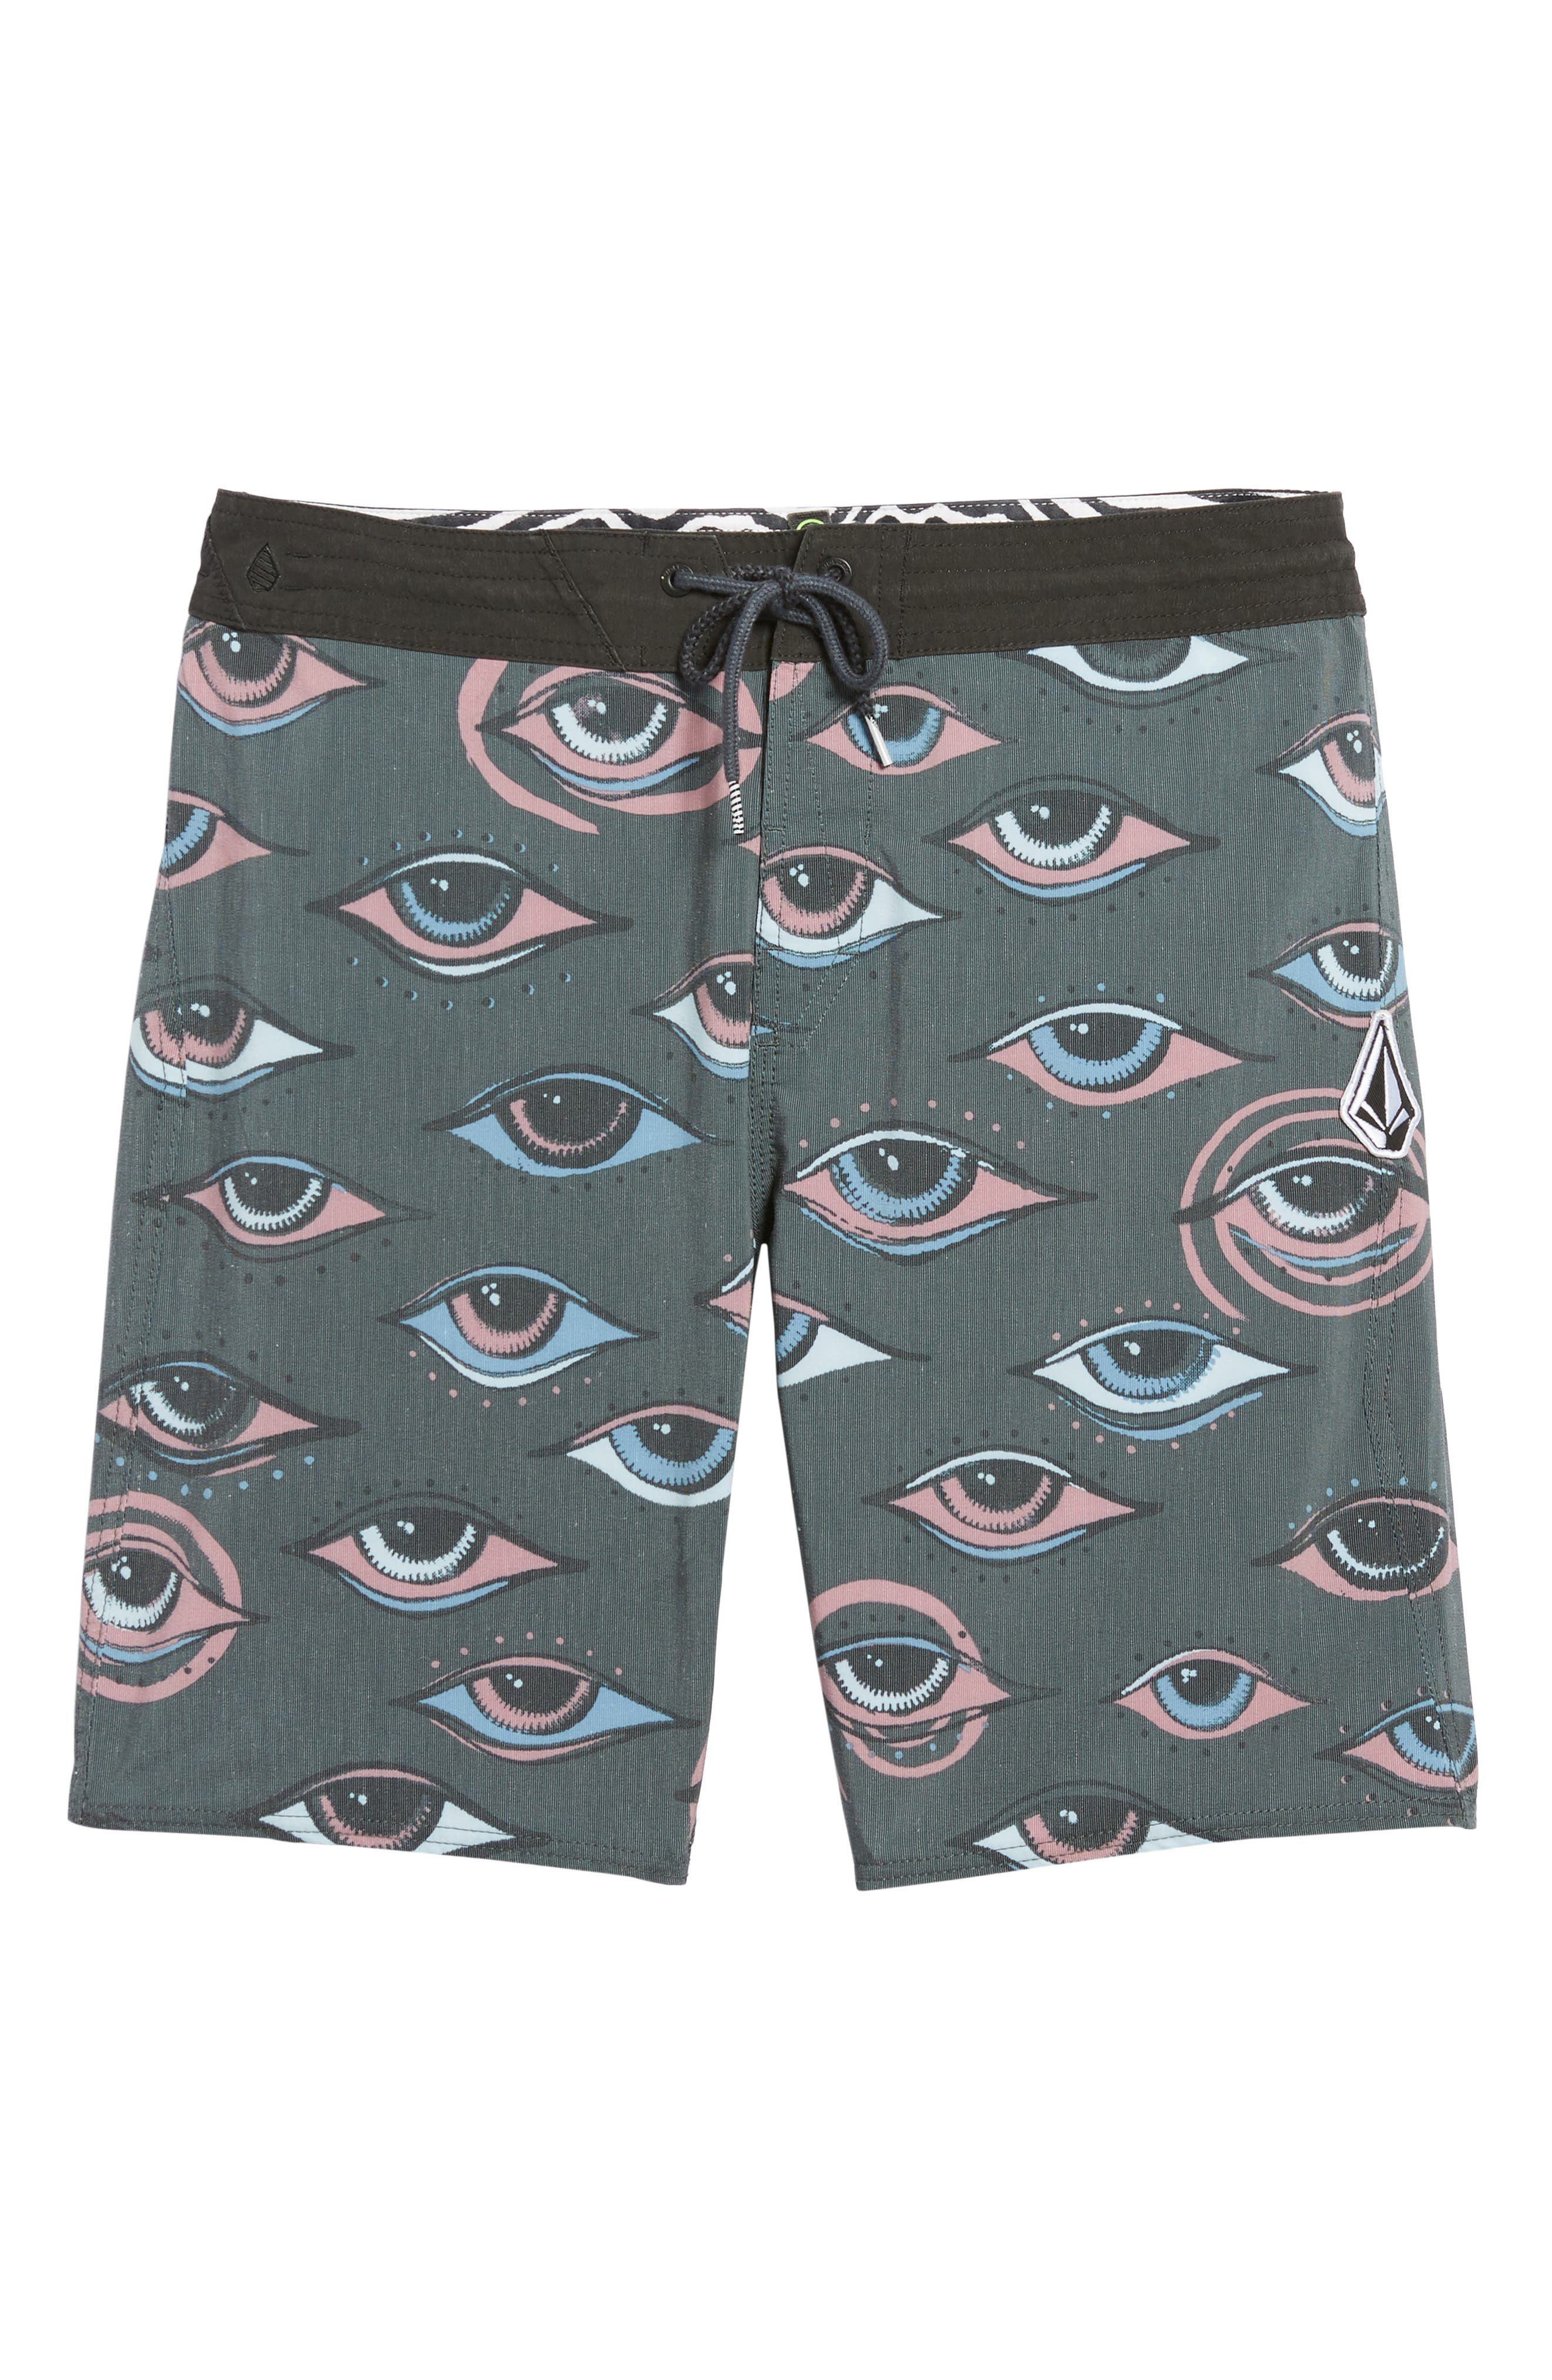 Burch Stoney Board Shorts,                             Alternate thumbnail 5, color,                             Stealth